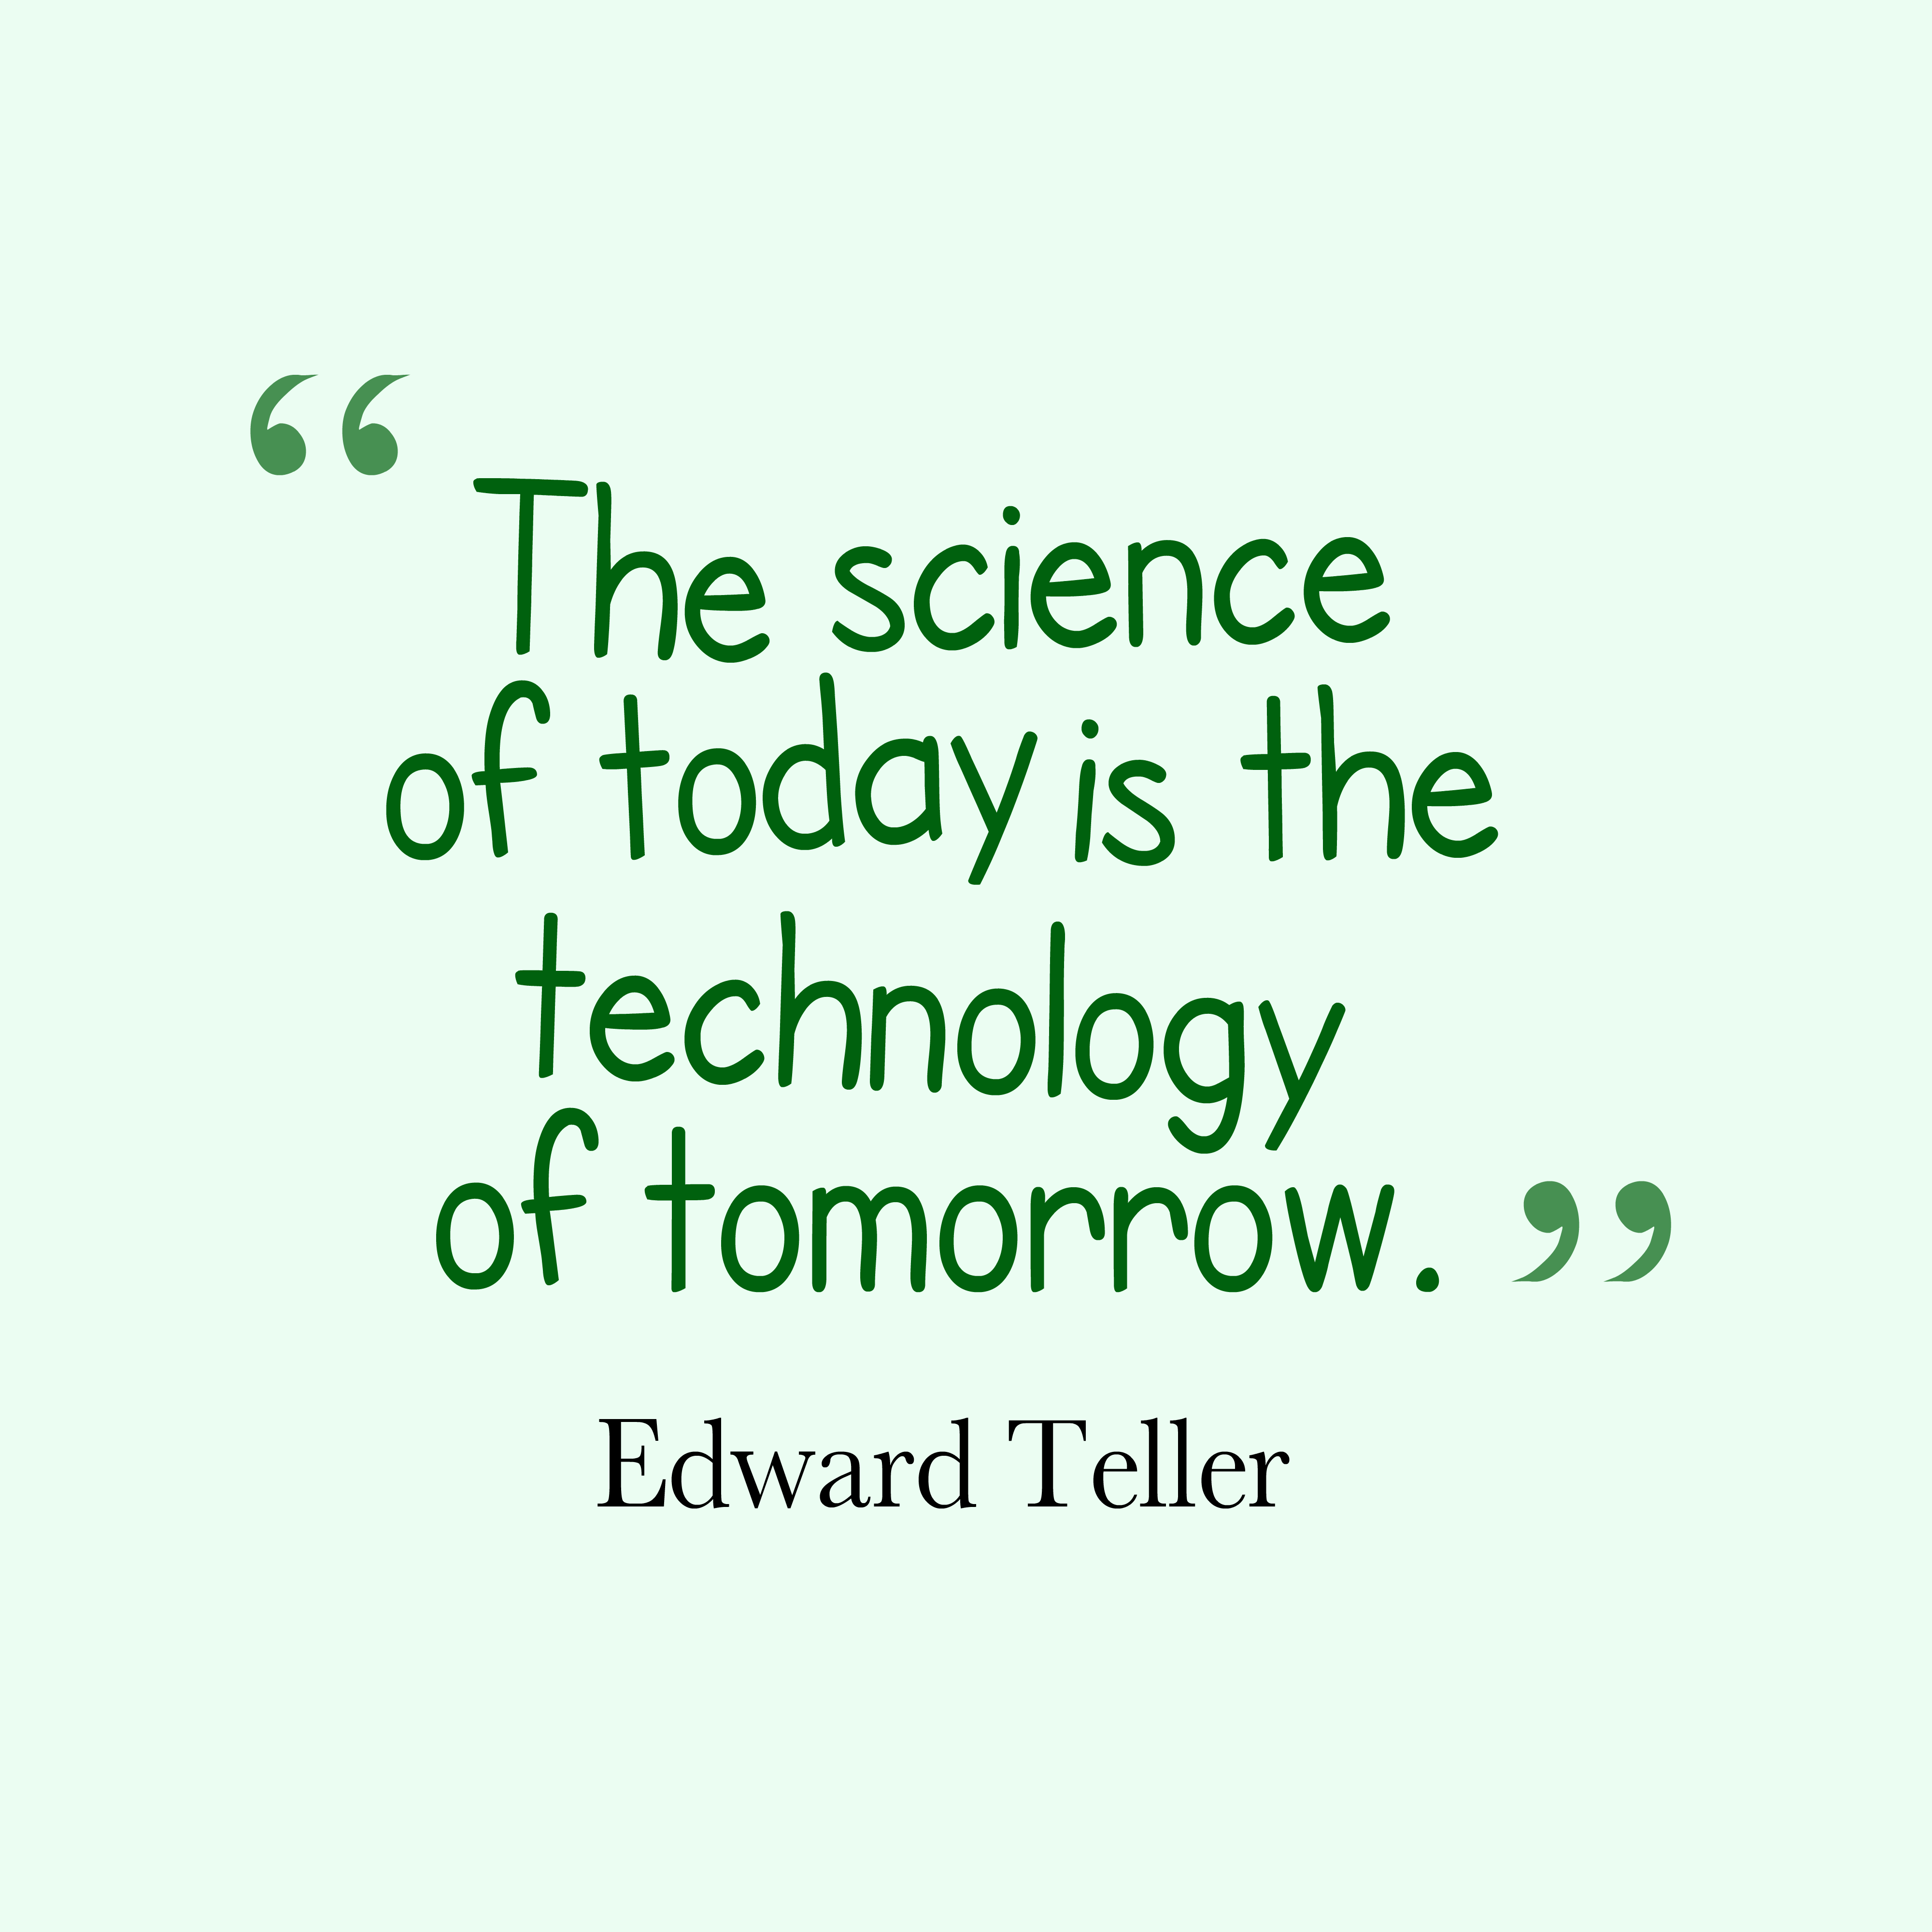 Scientist Quotes Pictures Technology Quotes  Funnydam  Funny Images Pictures